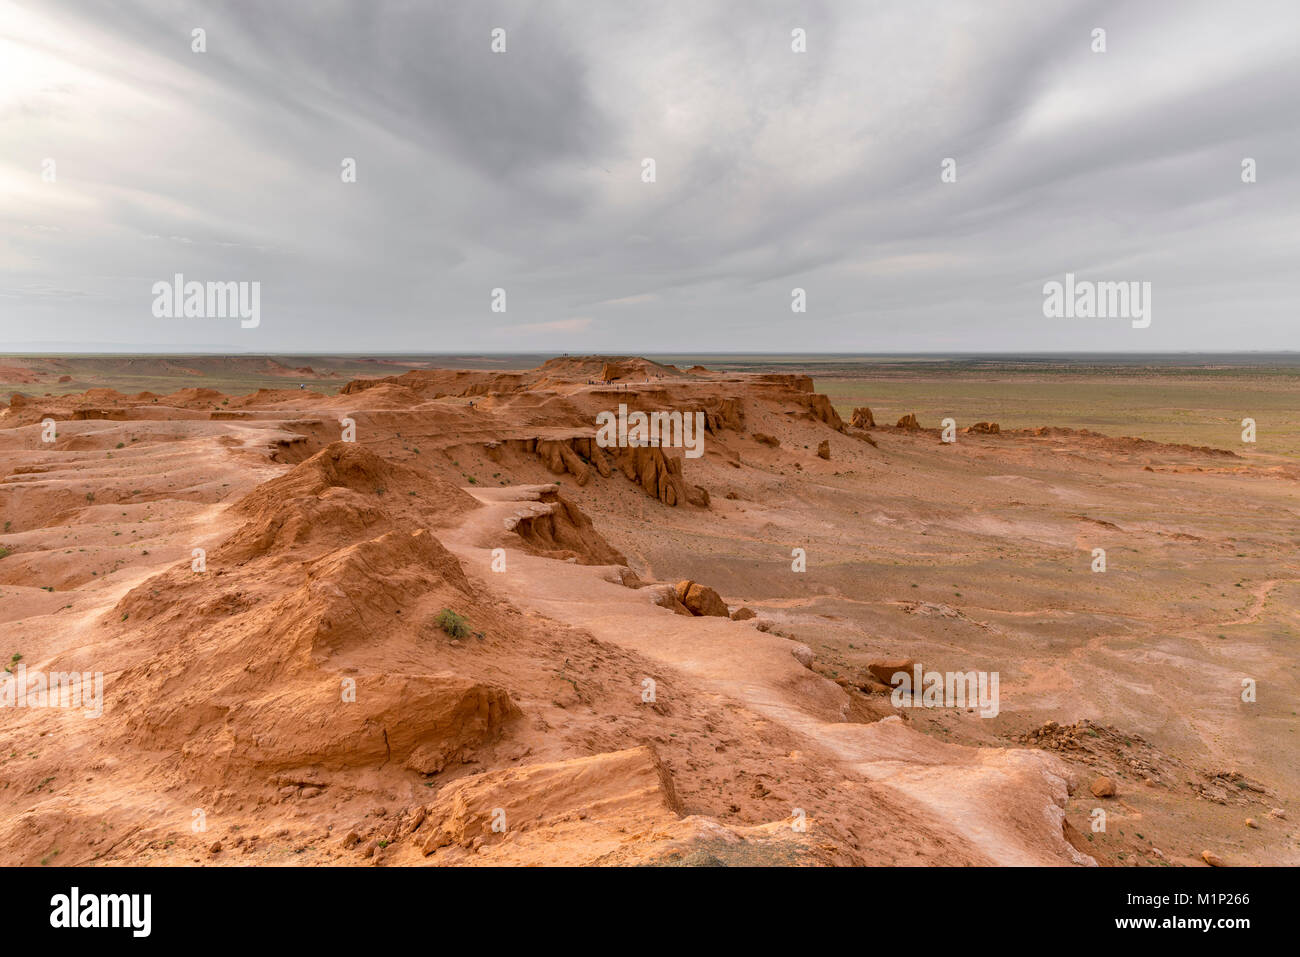 Flaming cliffs, Bajanzag, South Gobi province, Mongolia, Central Asia, Asia - Stock Image